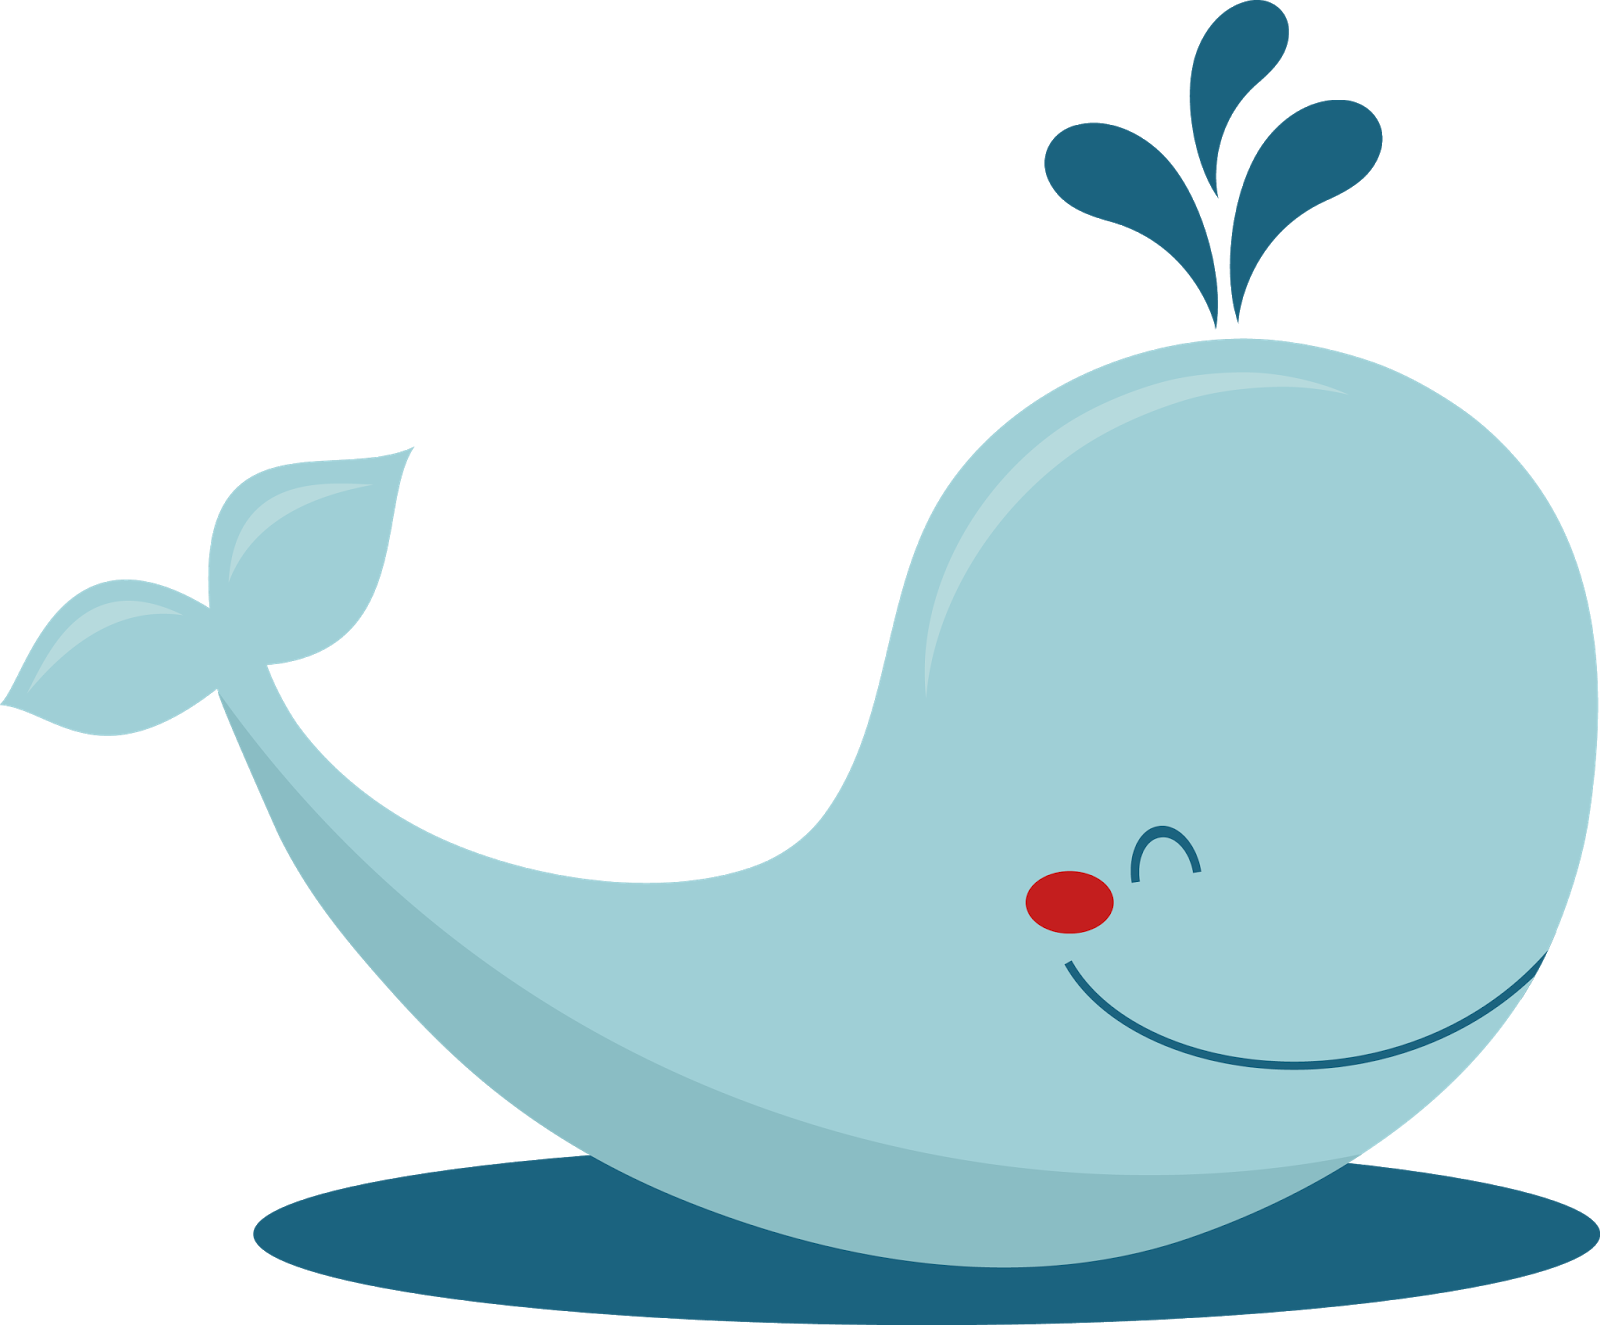 Whale Clip Art Pictures Free .-Whale clip art pictures free .-9